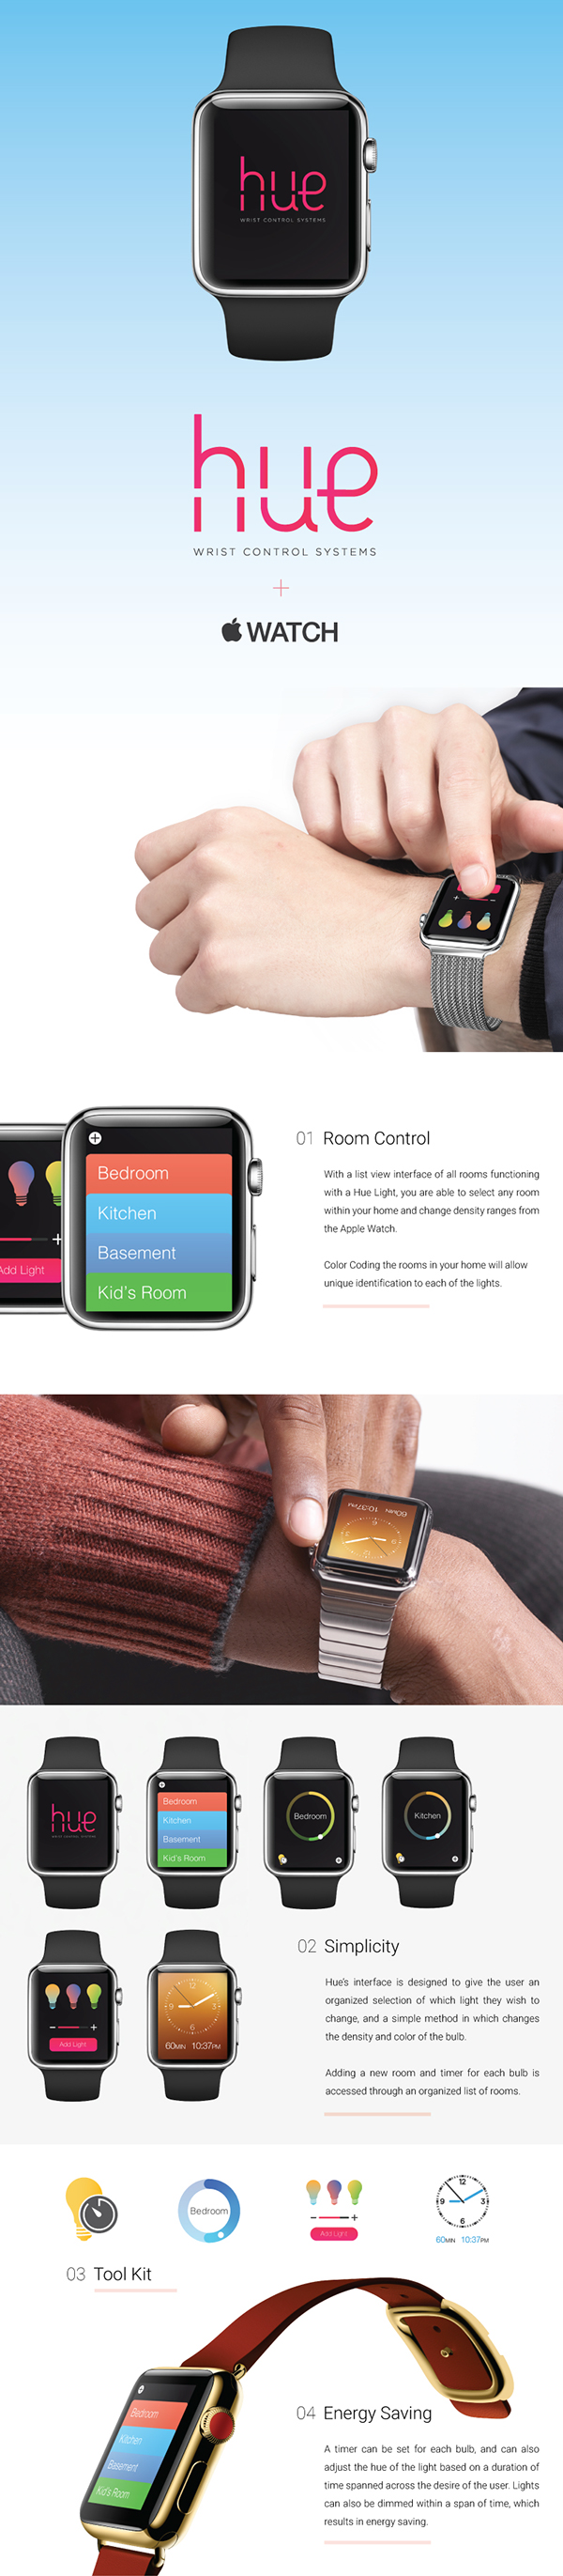 Philips Hue + Apple Watch Concept on Behance